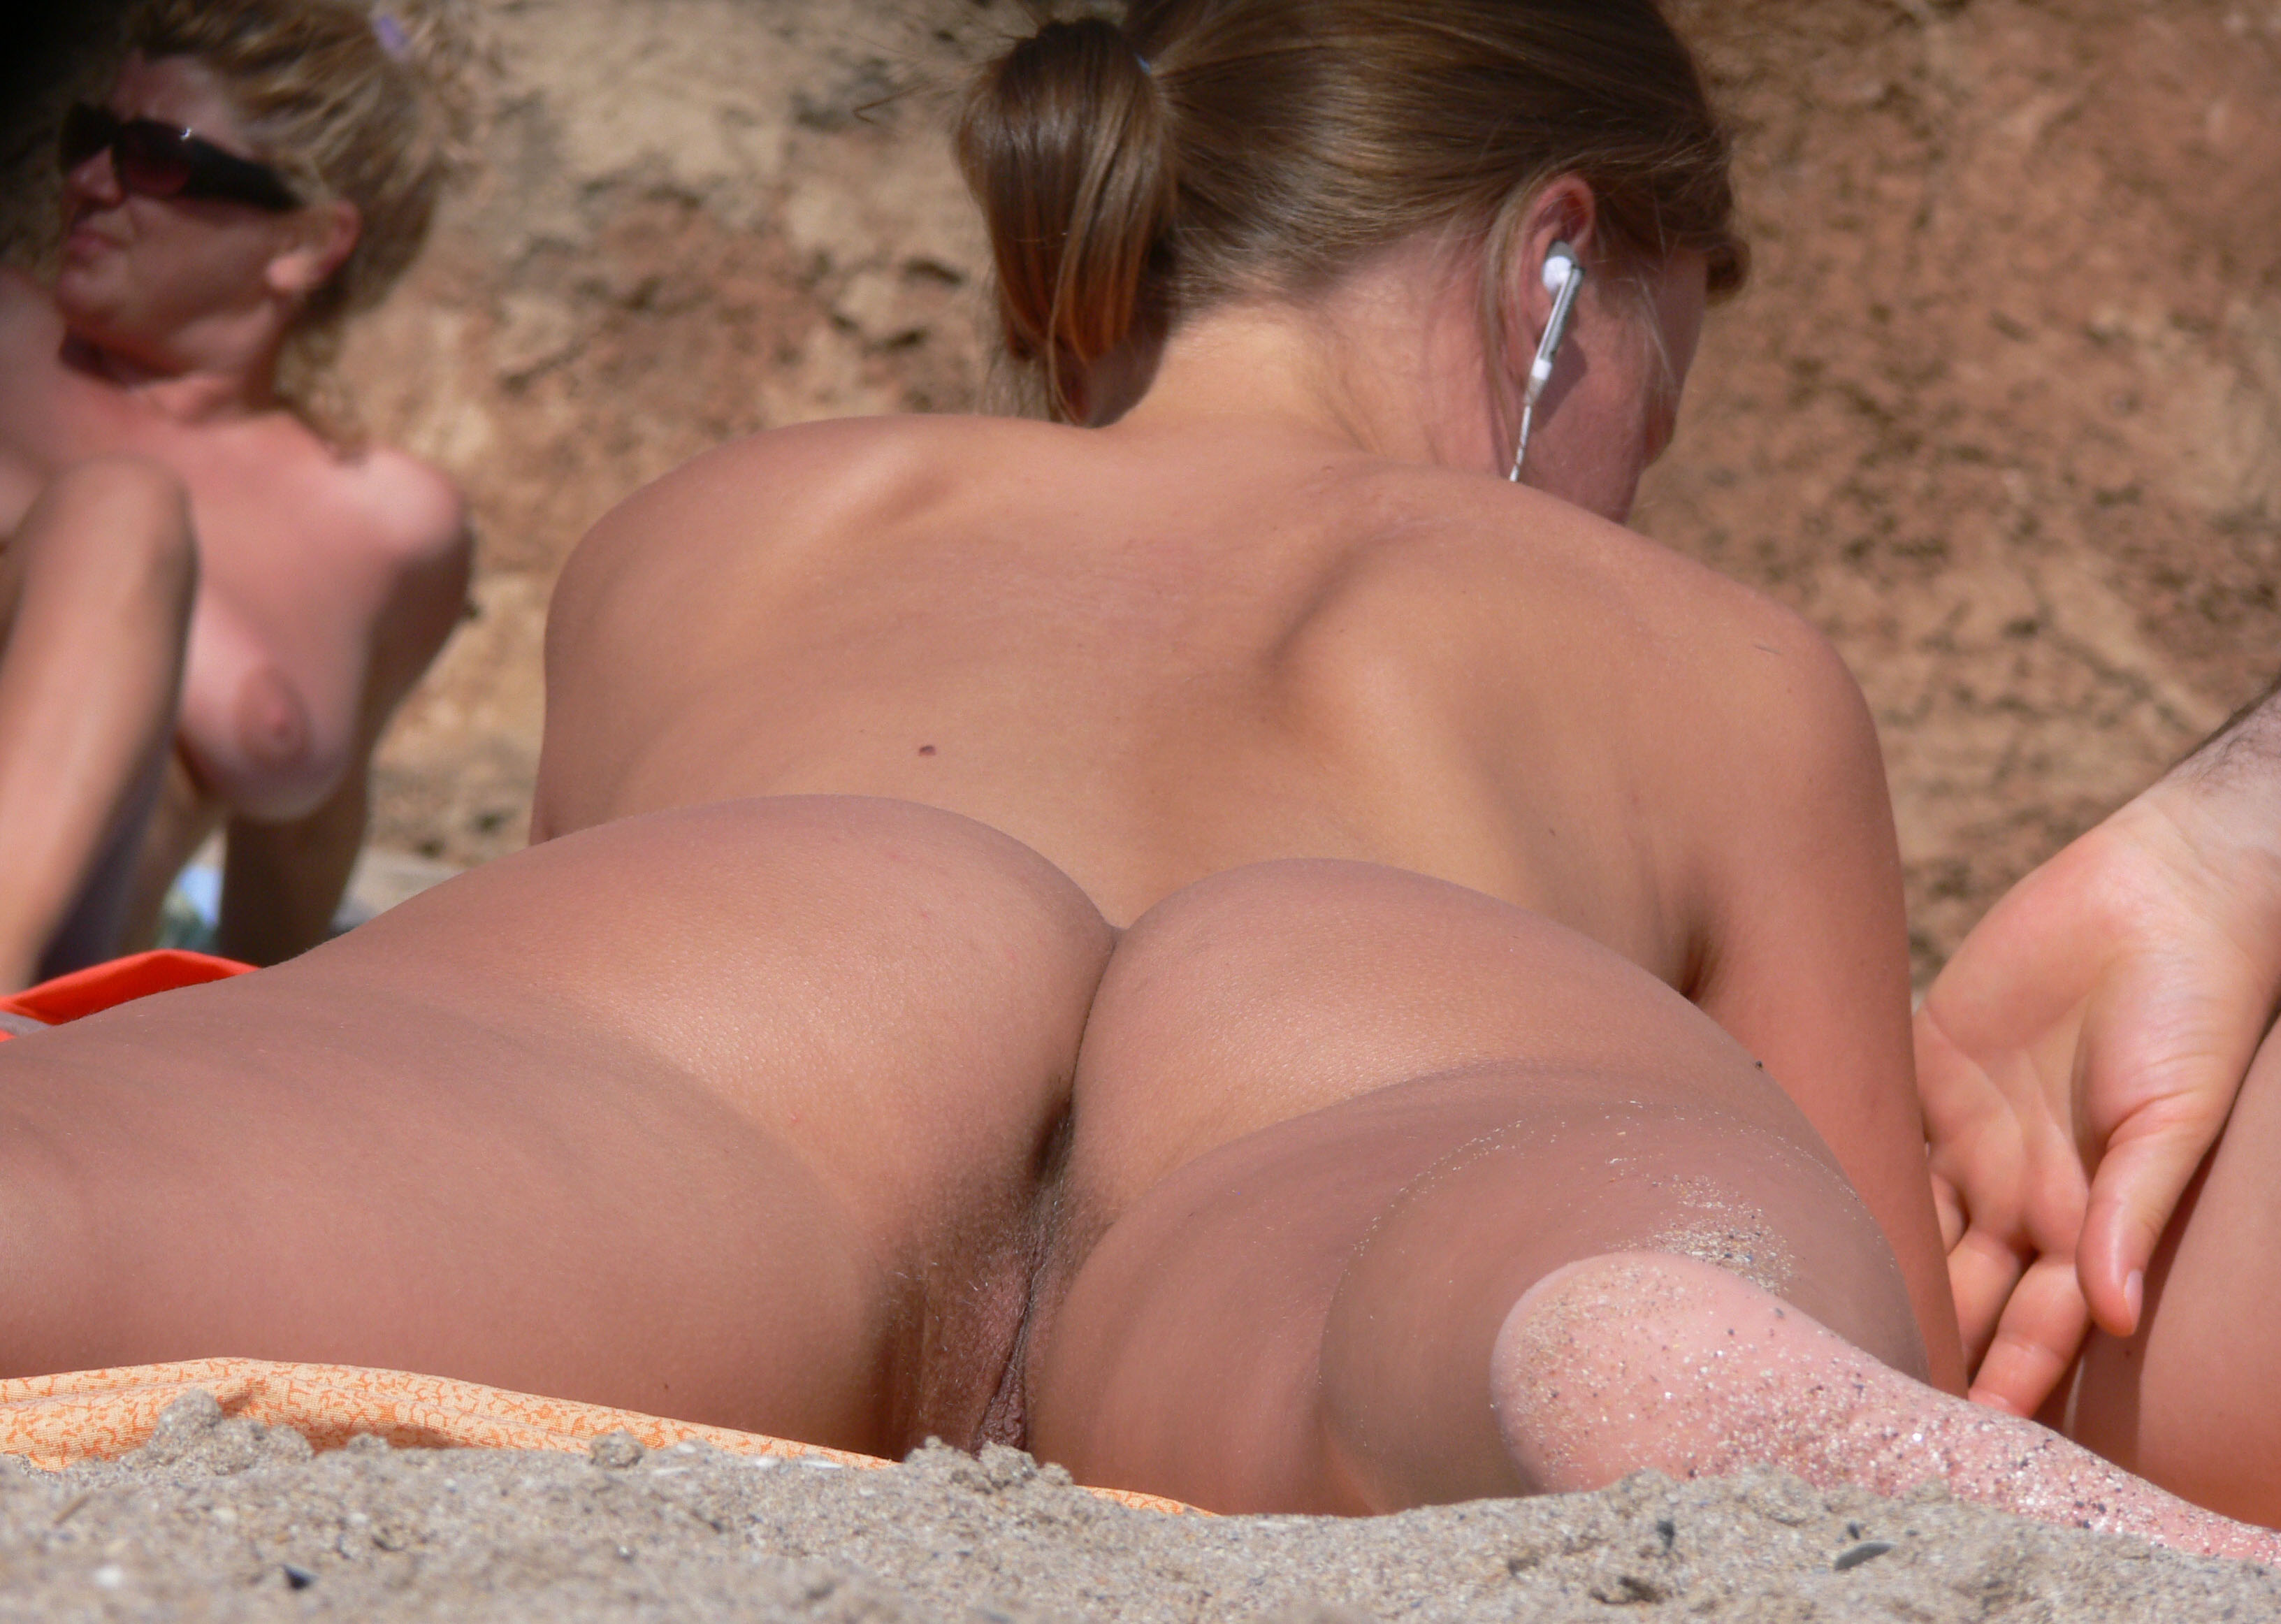 Photos blowjob at nudist beach apologise